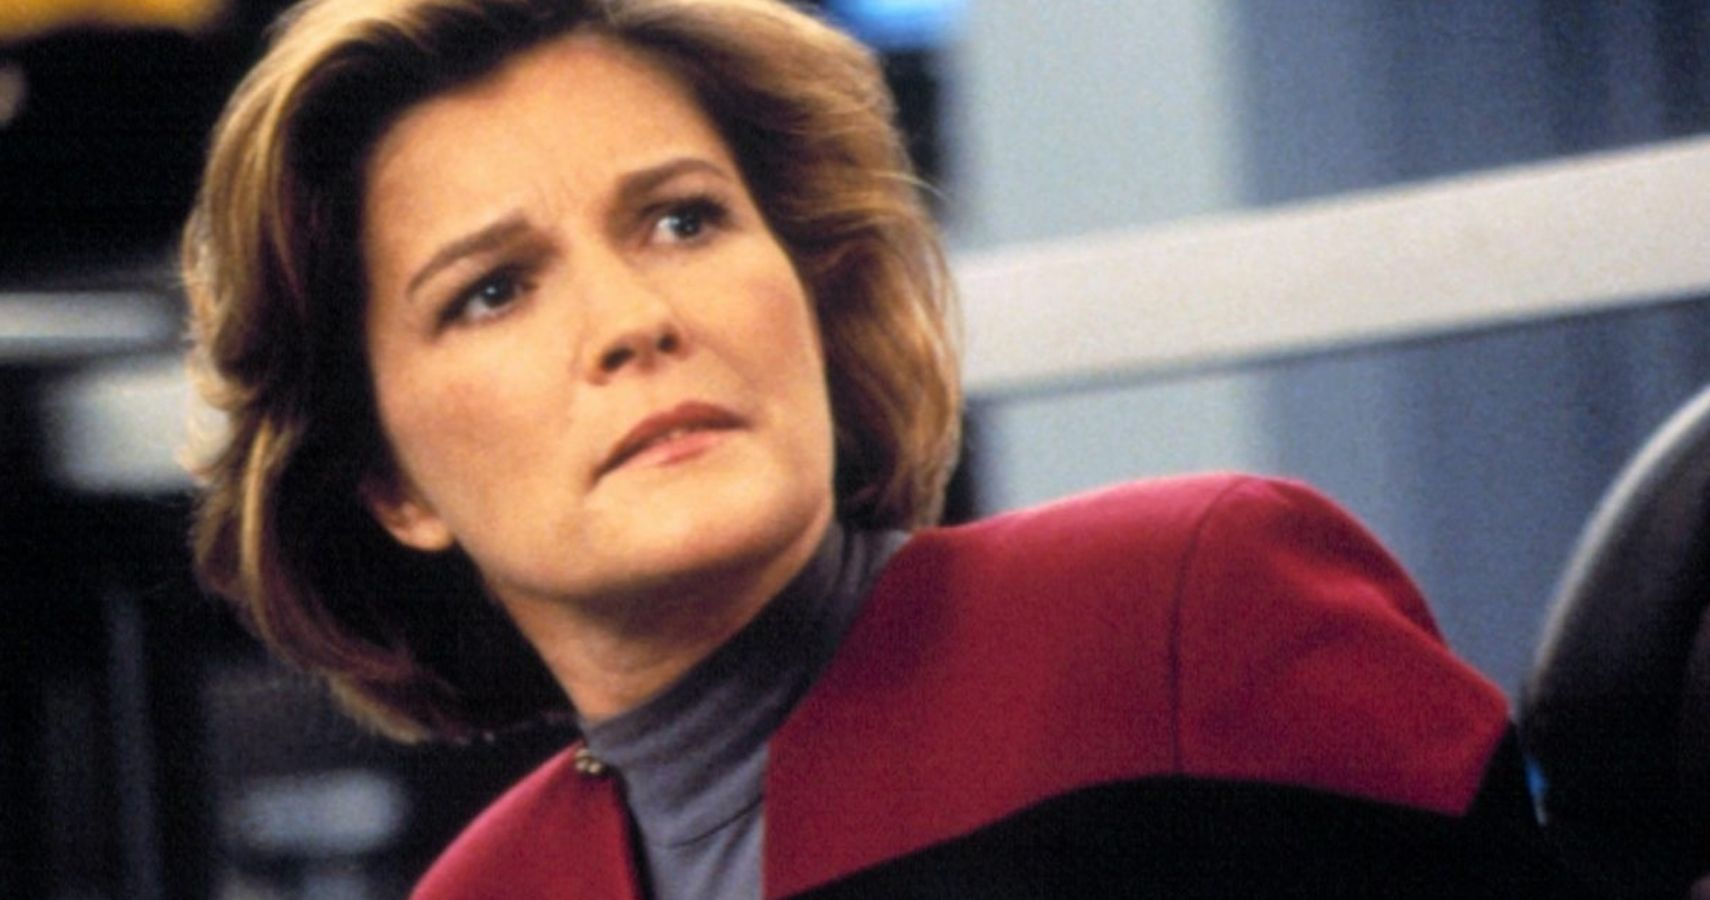 Star Trek Voyager: 5 Times Janeway Was the Best Captain (And 5 Times She Was the Worst)